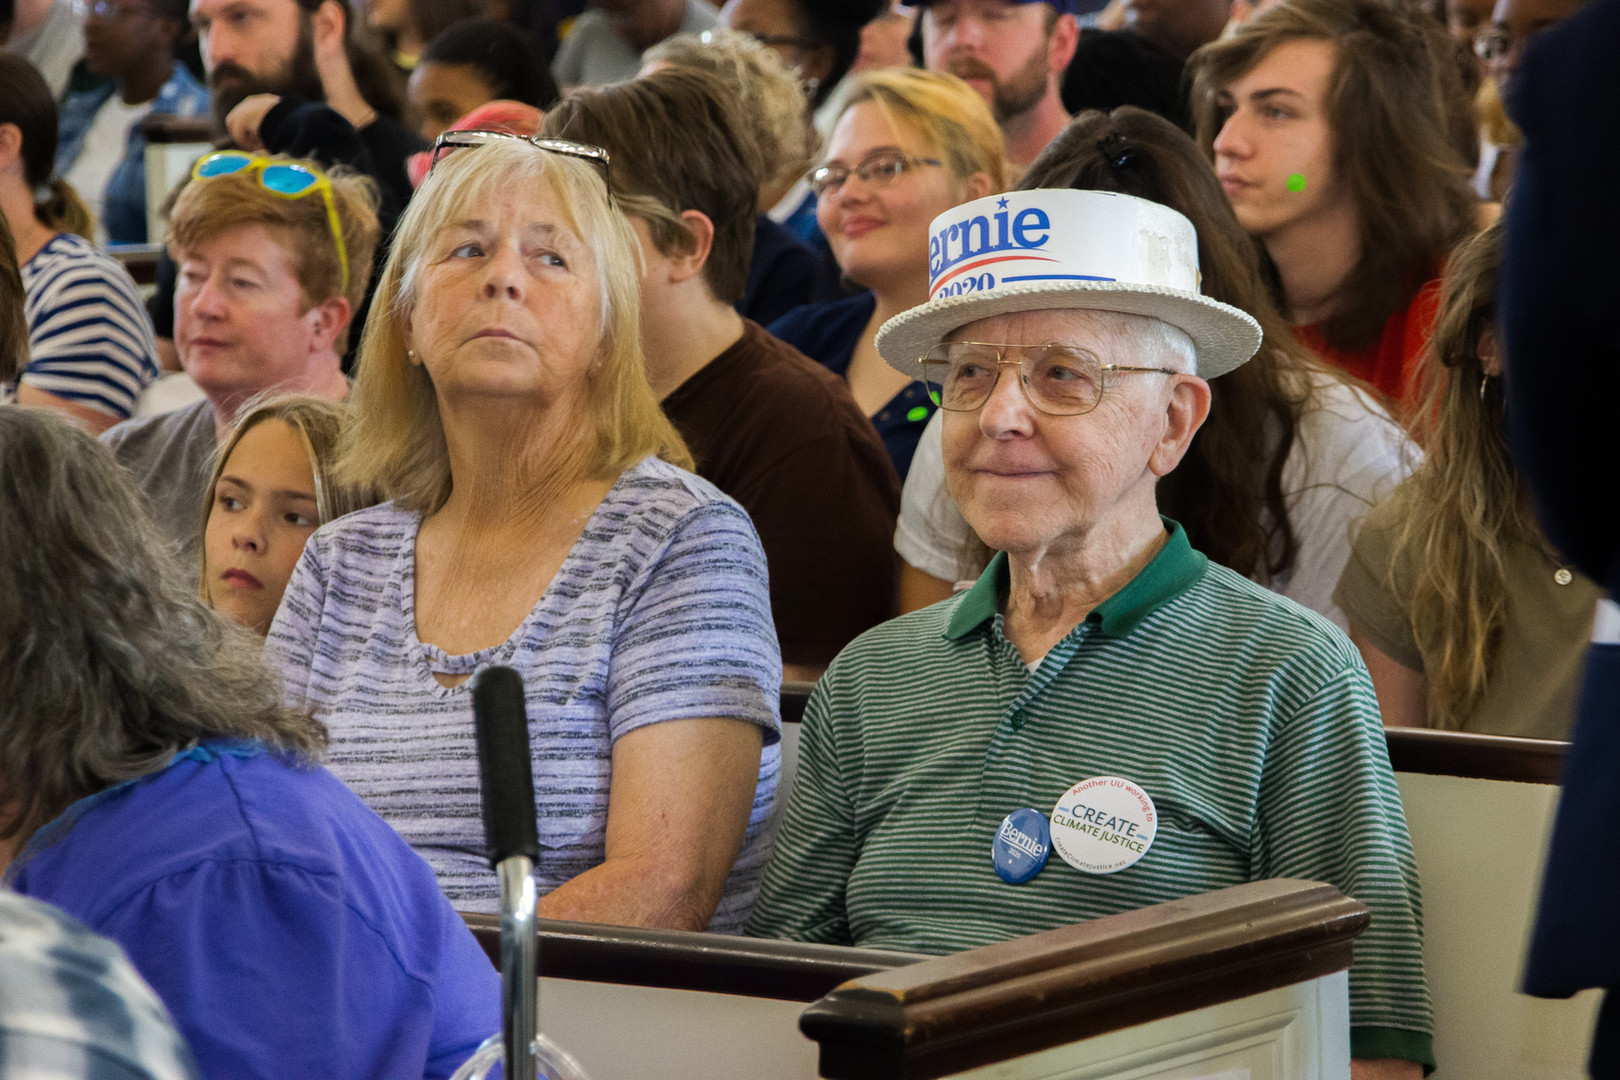 Bernie Sanders supporter waiting for his arrival.